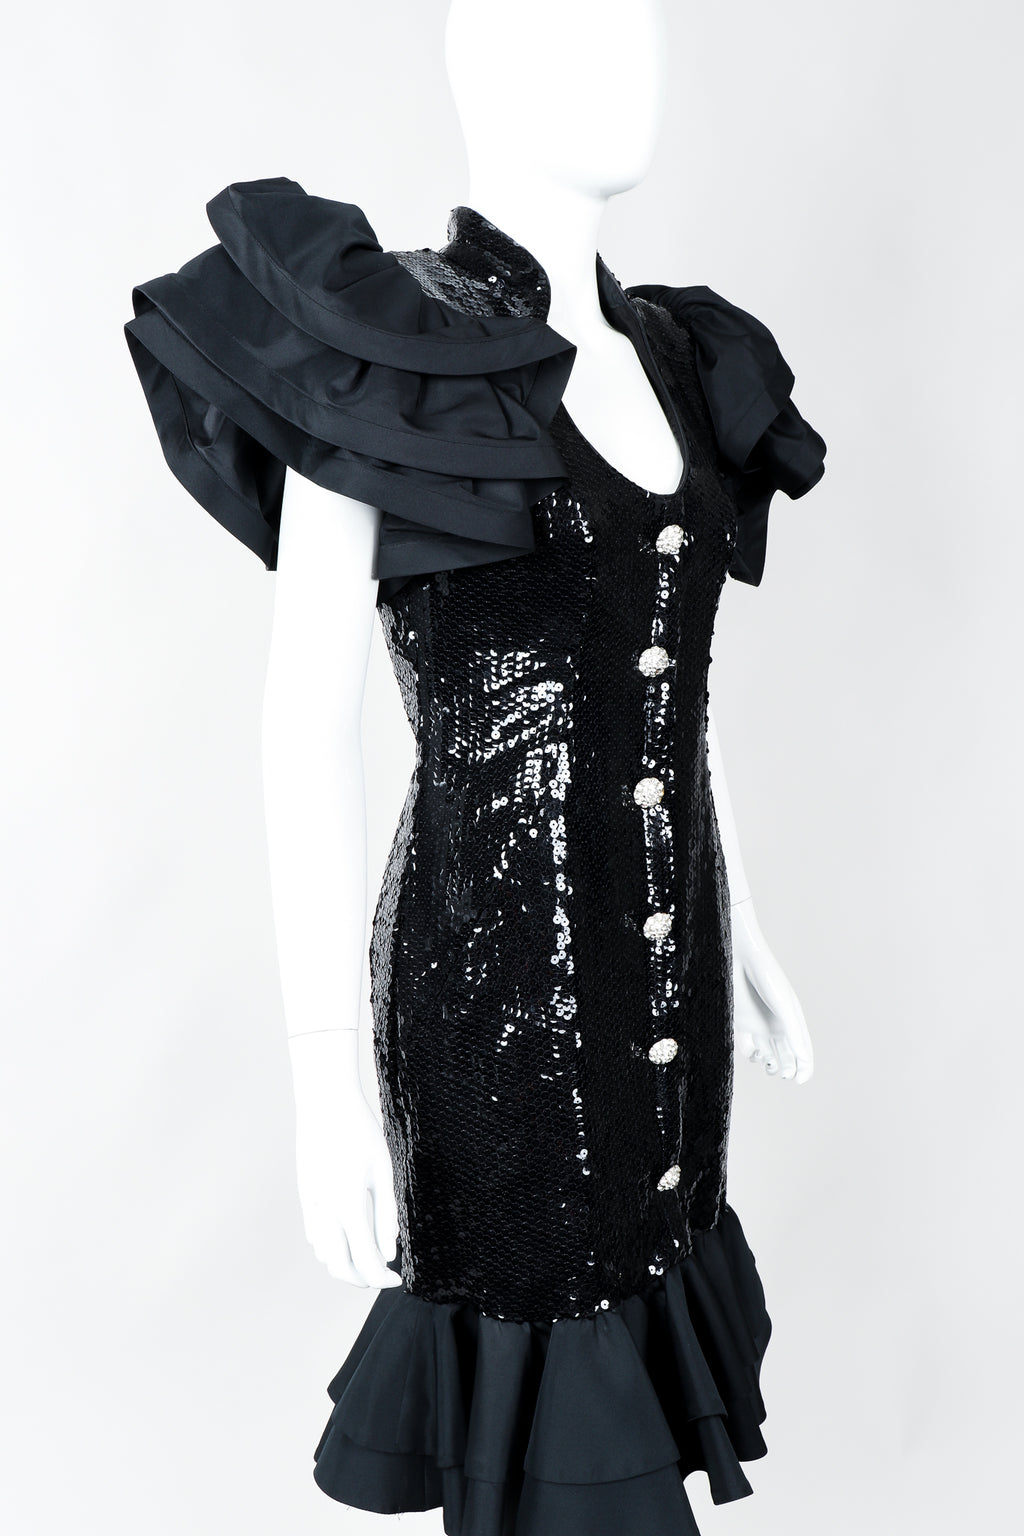 Vintage Lillie Rubin Sequin Ruffle Shoulder Cocktail Dress on Mannequin, Cropped at Recess